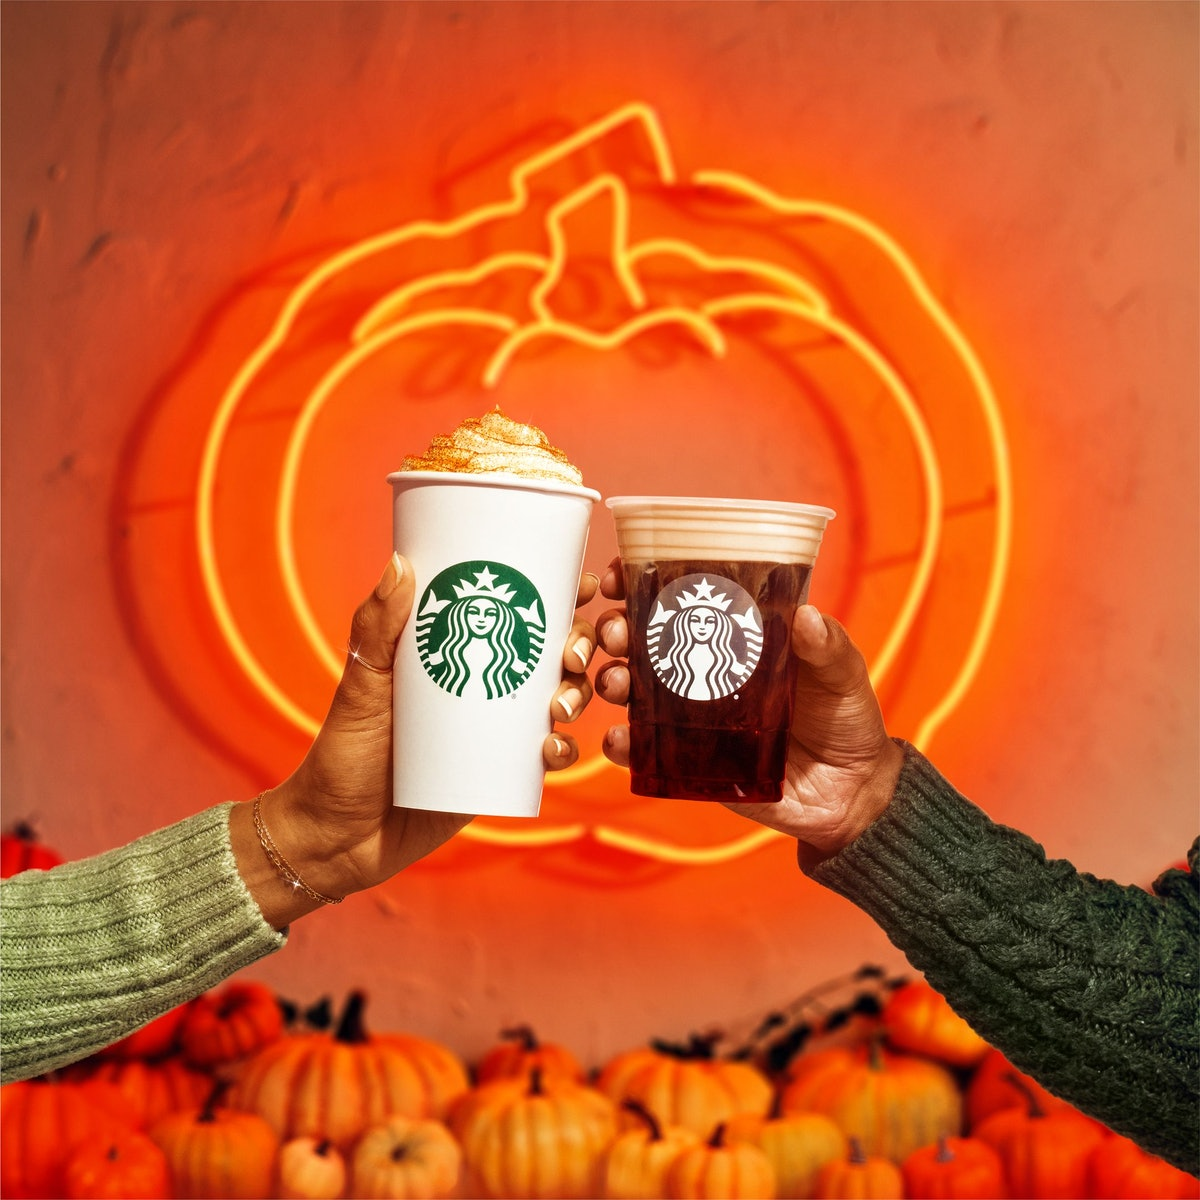 Here's how much Starbucks' Pumpkin Spice Latte and Pumpkin Cream Cold Brew will cost you.